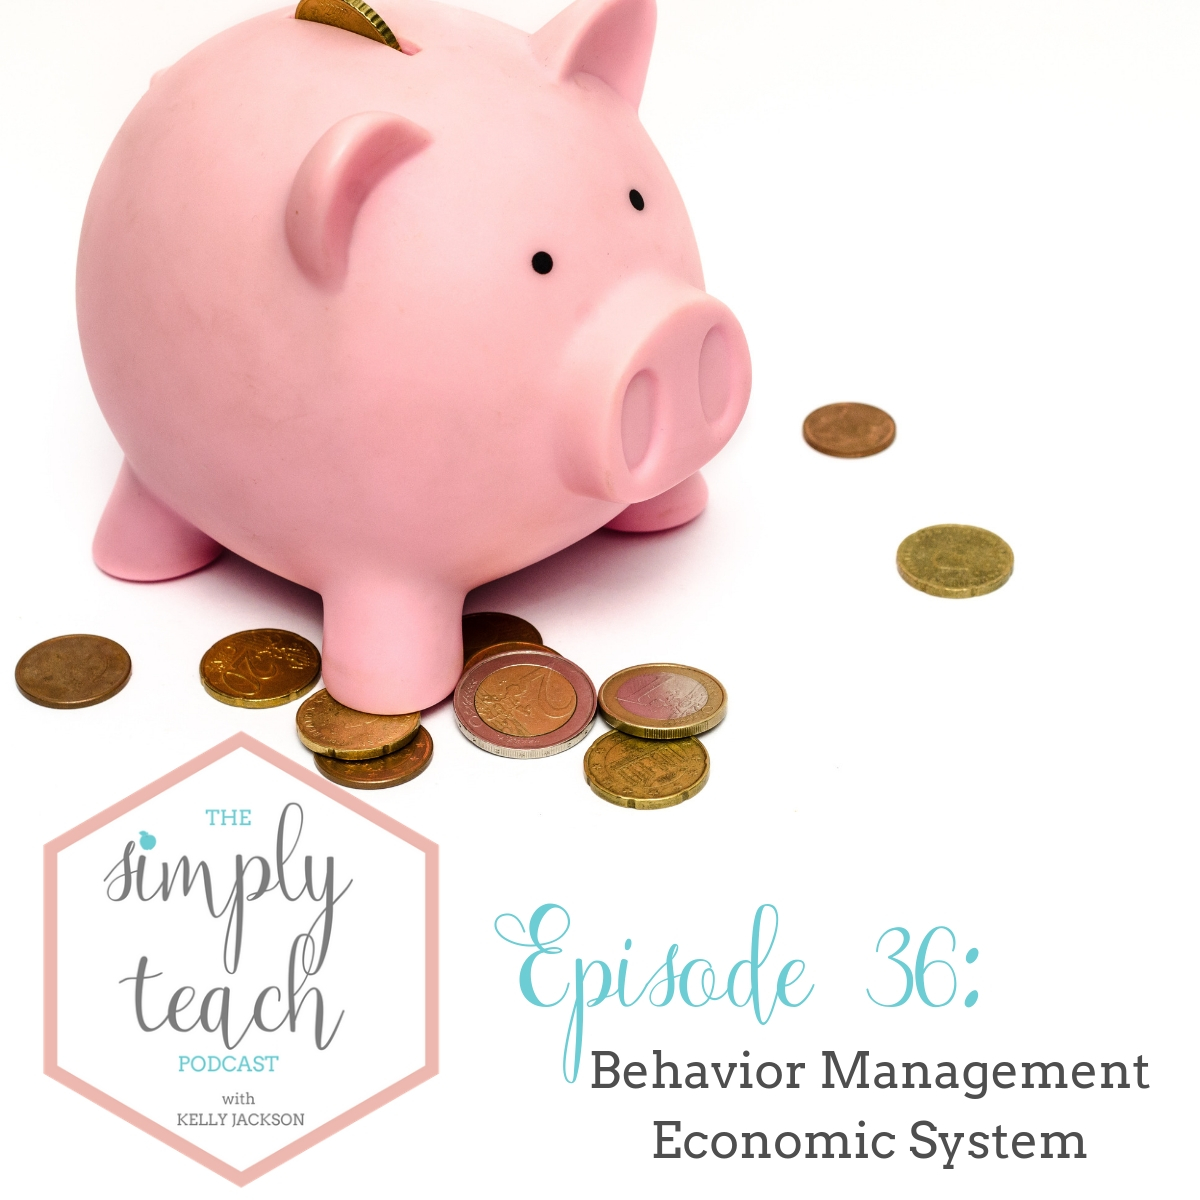 """Piggy bank with coins outside of it. Text overlay: """"Simply Teach Podcast. Episode 36- Behavior Management Economic System"""